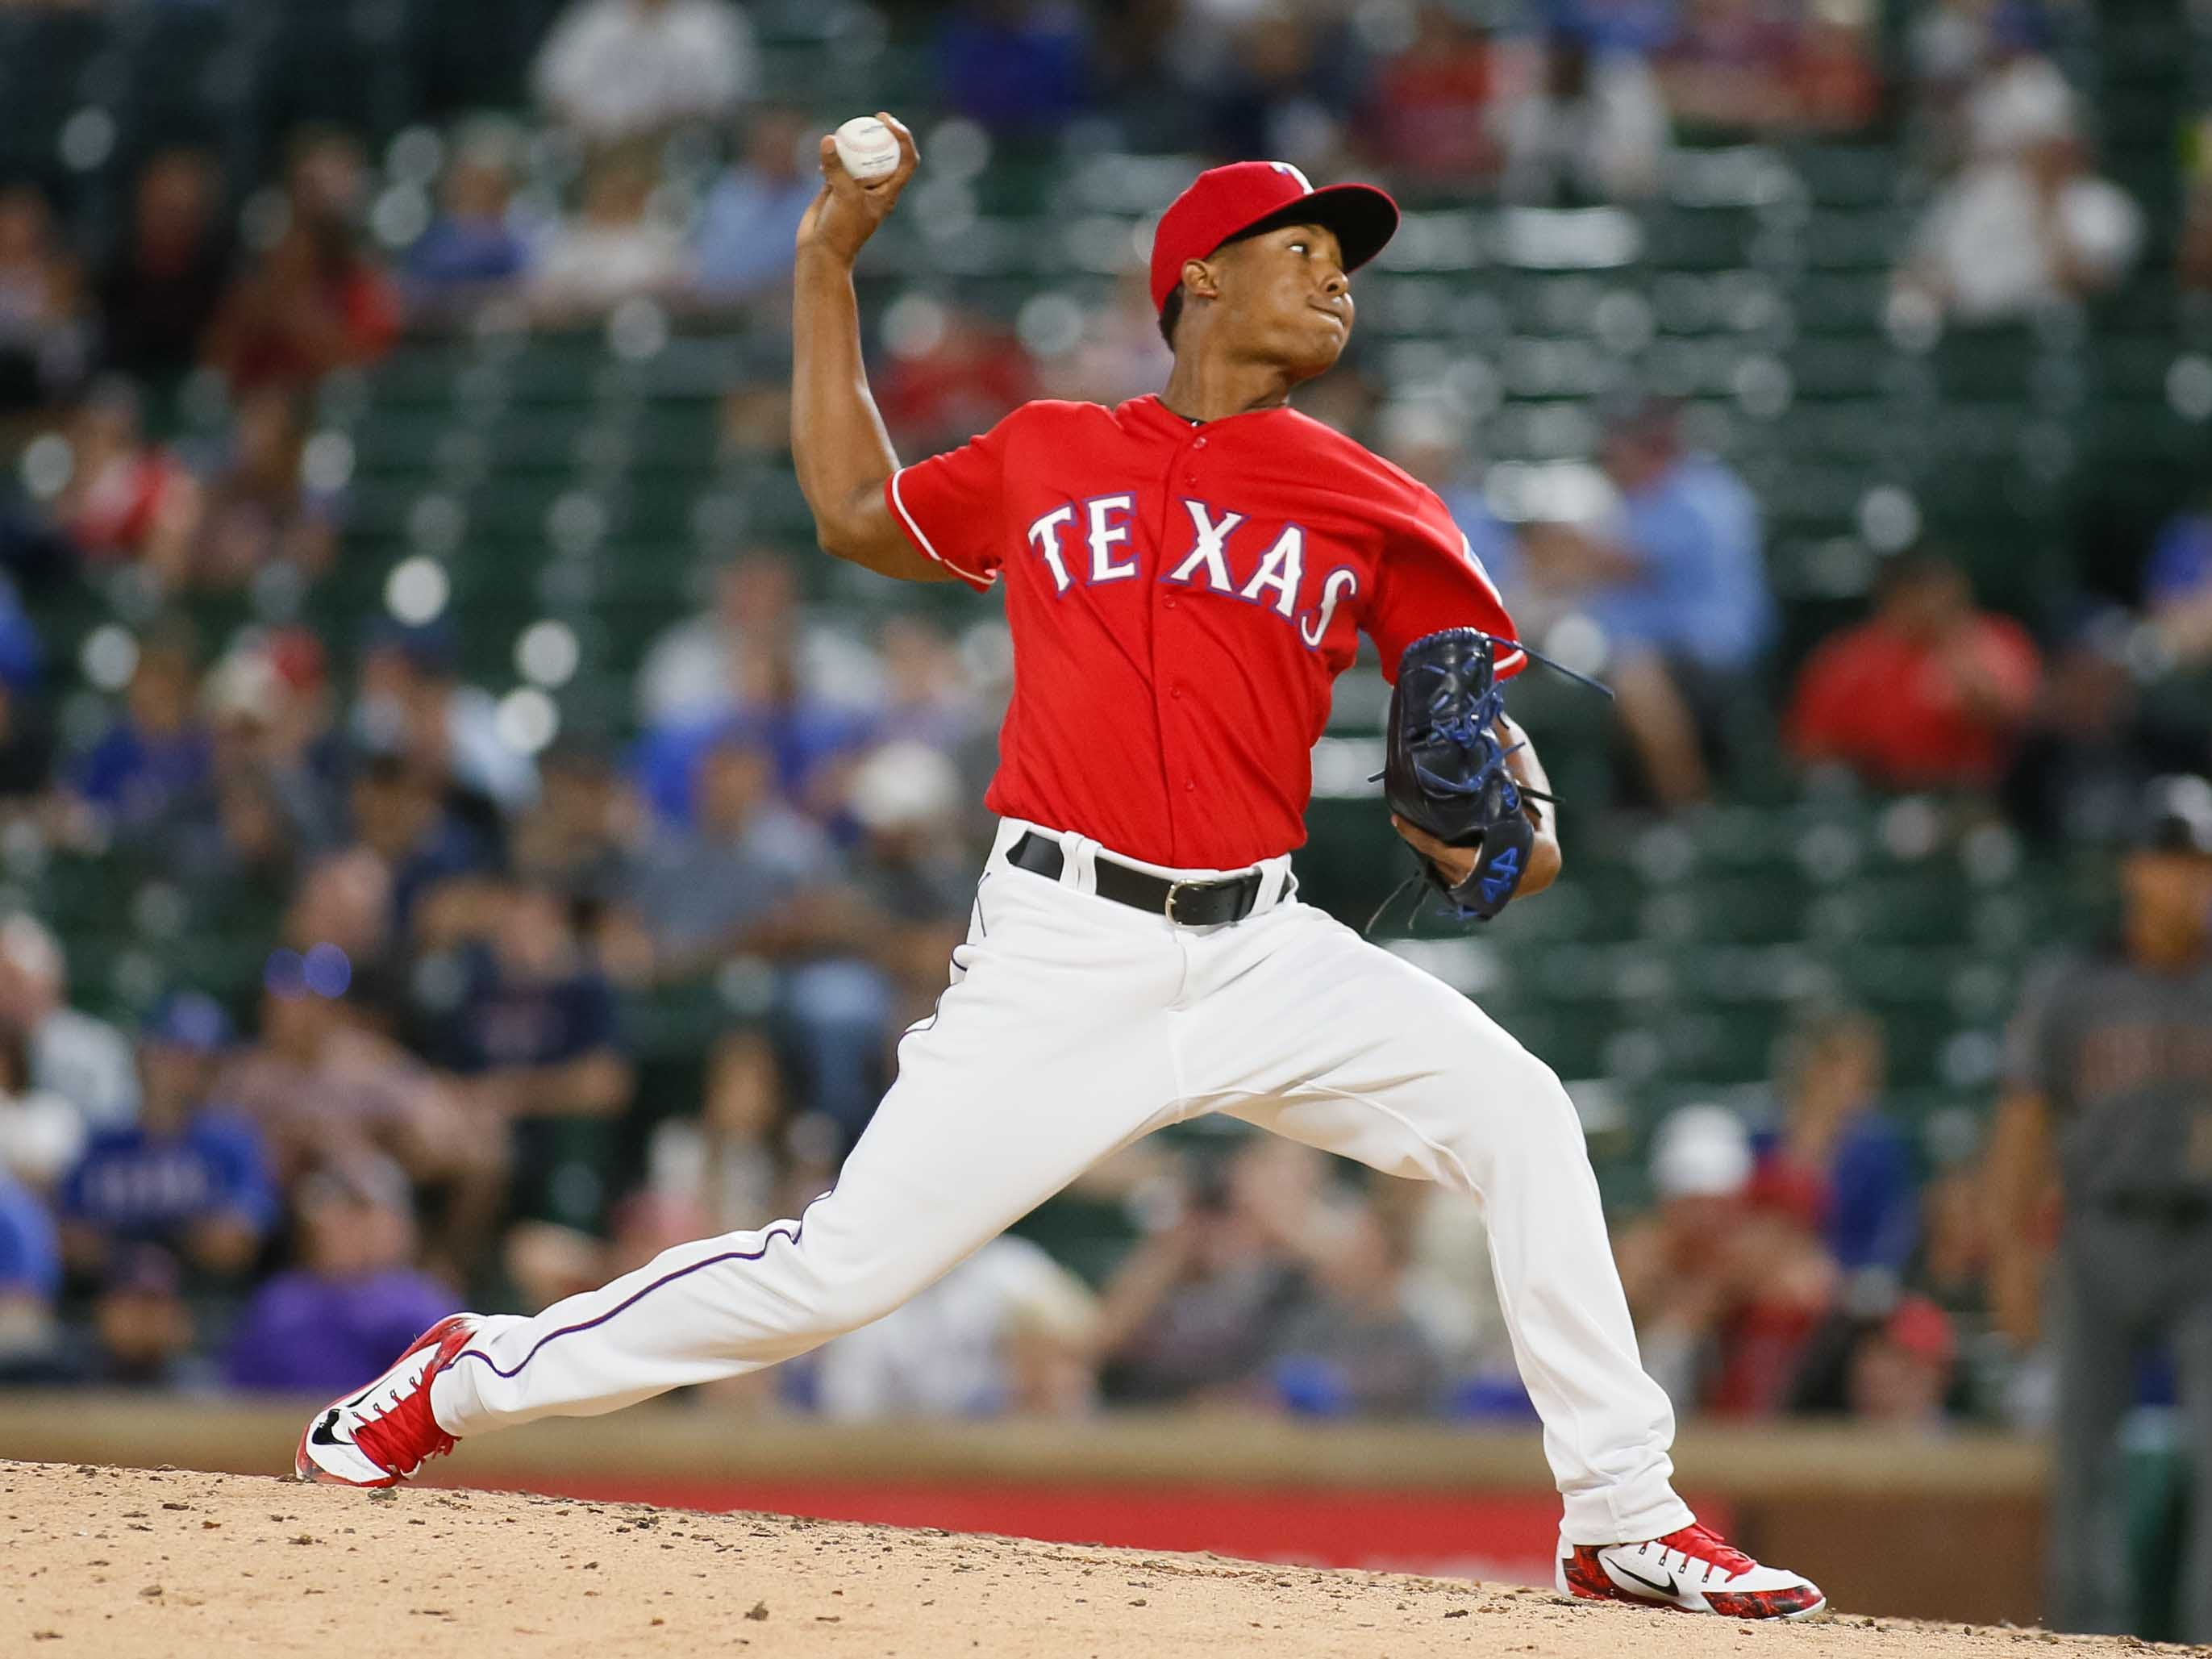 Aug 13, 2018; Arlington, TX, USA; Texas Rangers relief pitcher Jose Leclerc (62) throws in the ninth inning against the Arizona Diamondbacks at Globe Life Park in Arlington. Mandatory Credit: Ray Carlin-USA TODAY Sports